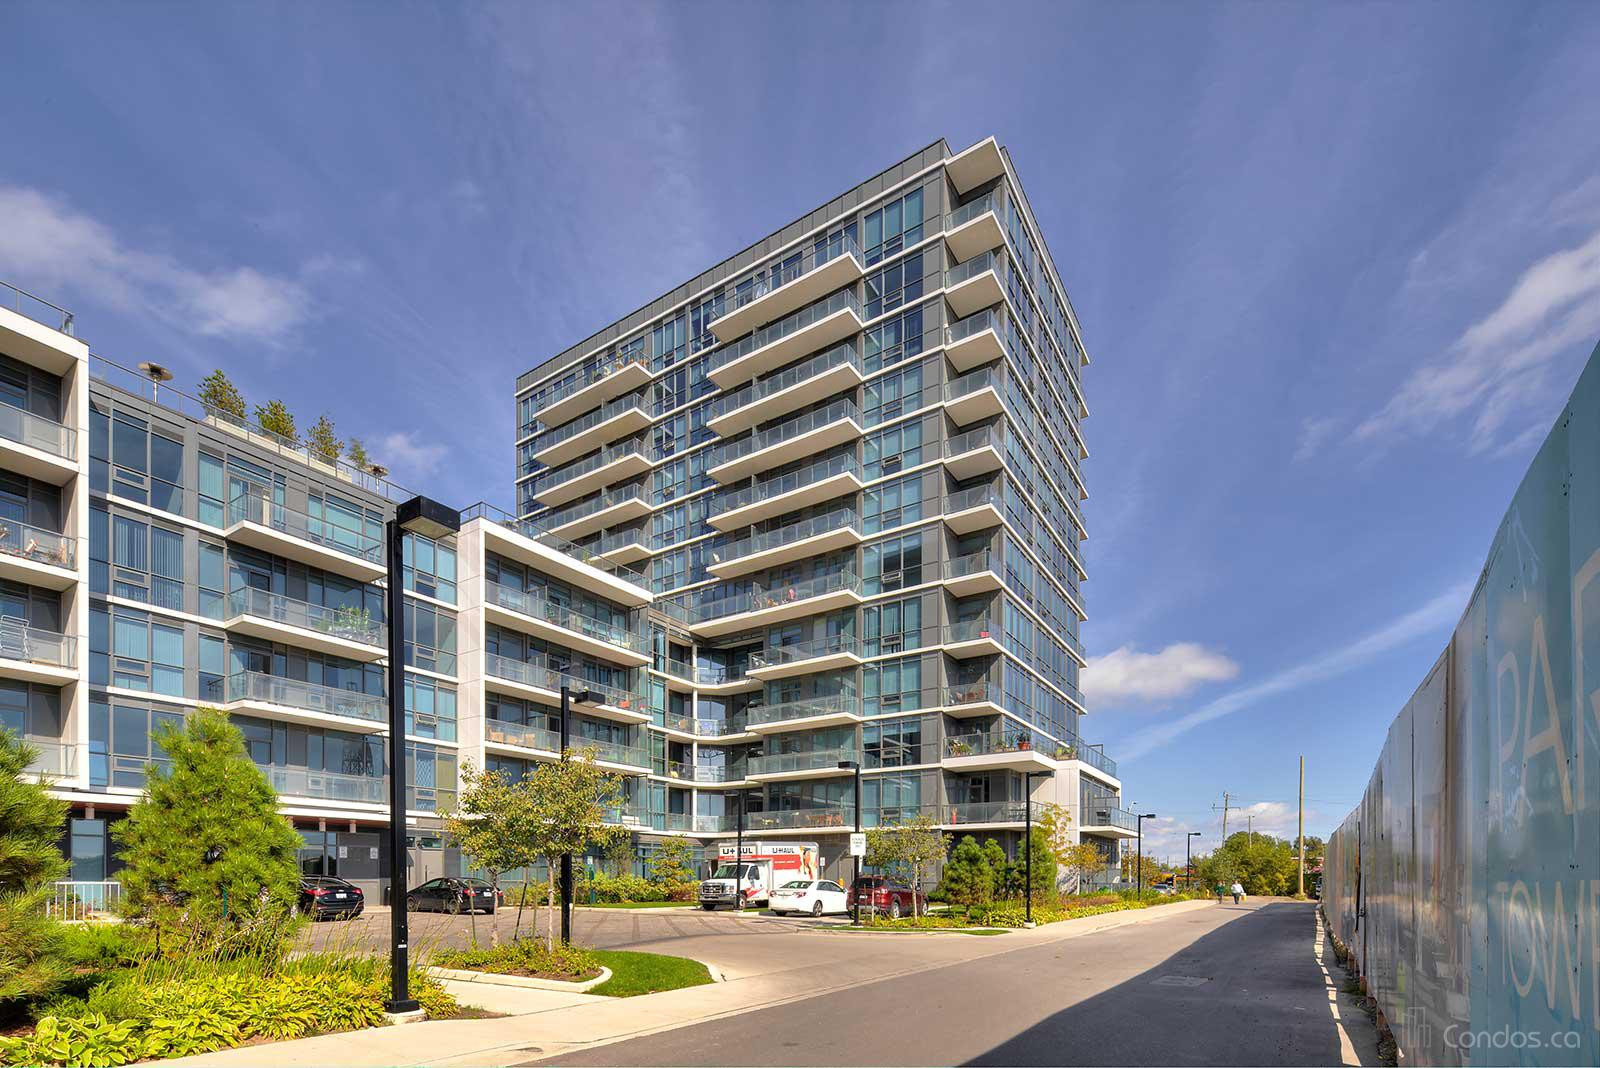 IQ Condos at 1185 The Queensway, Toronto 1